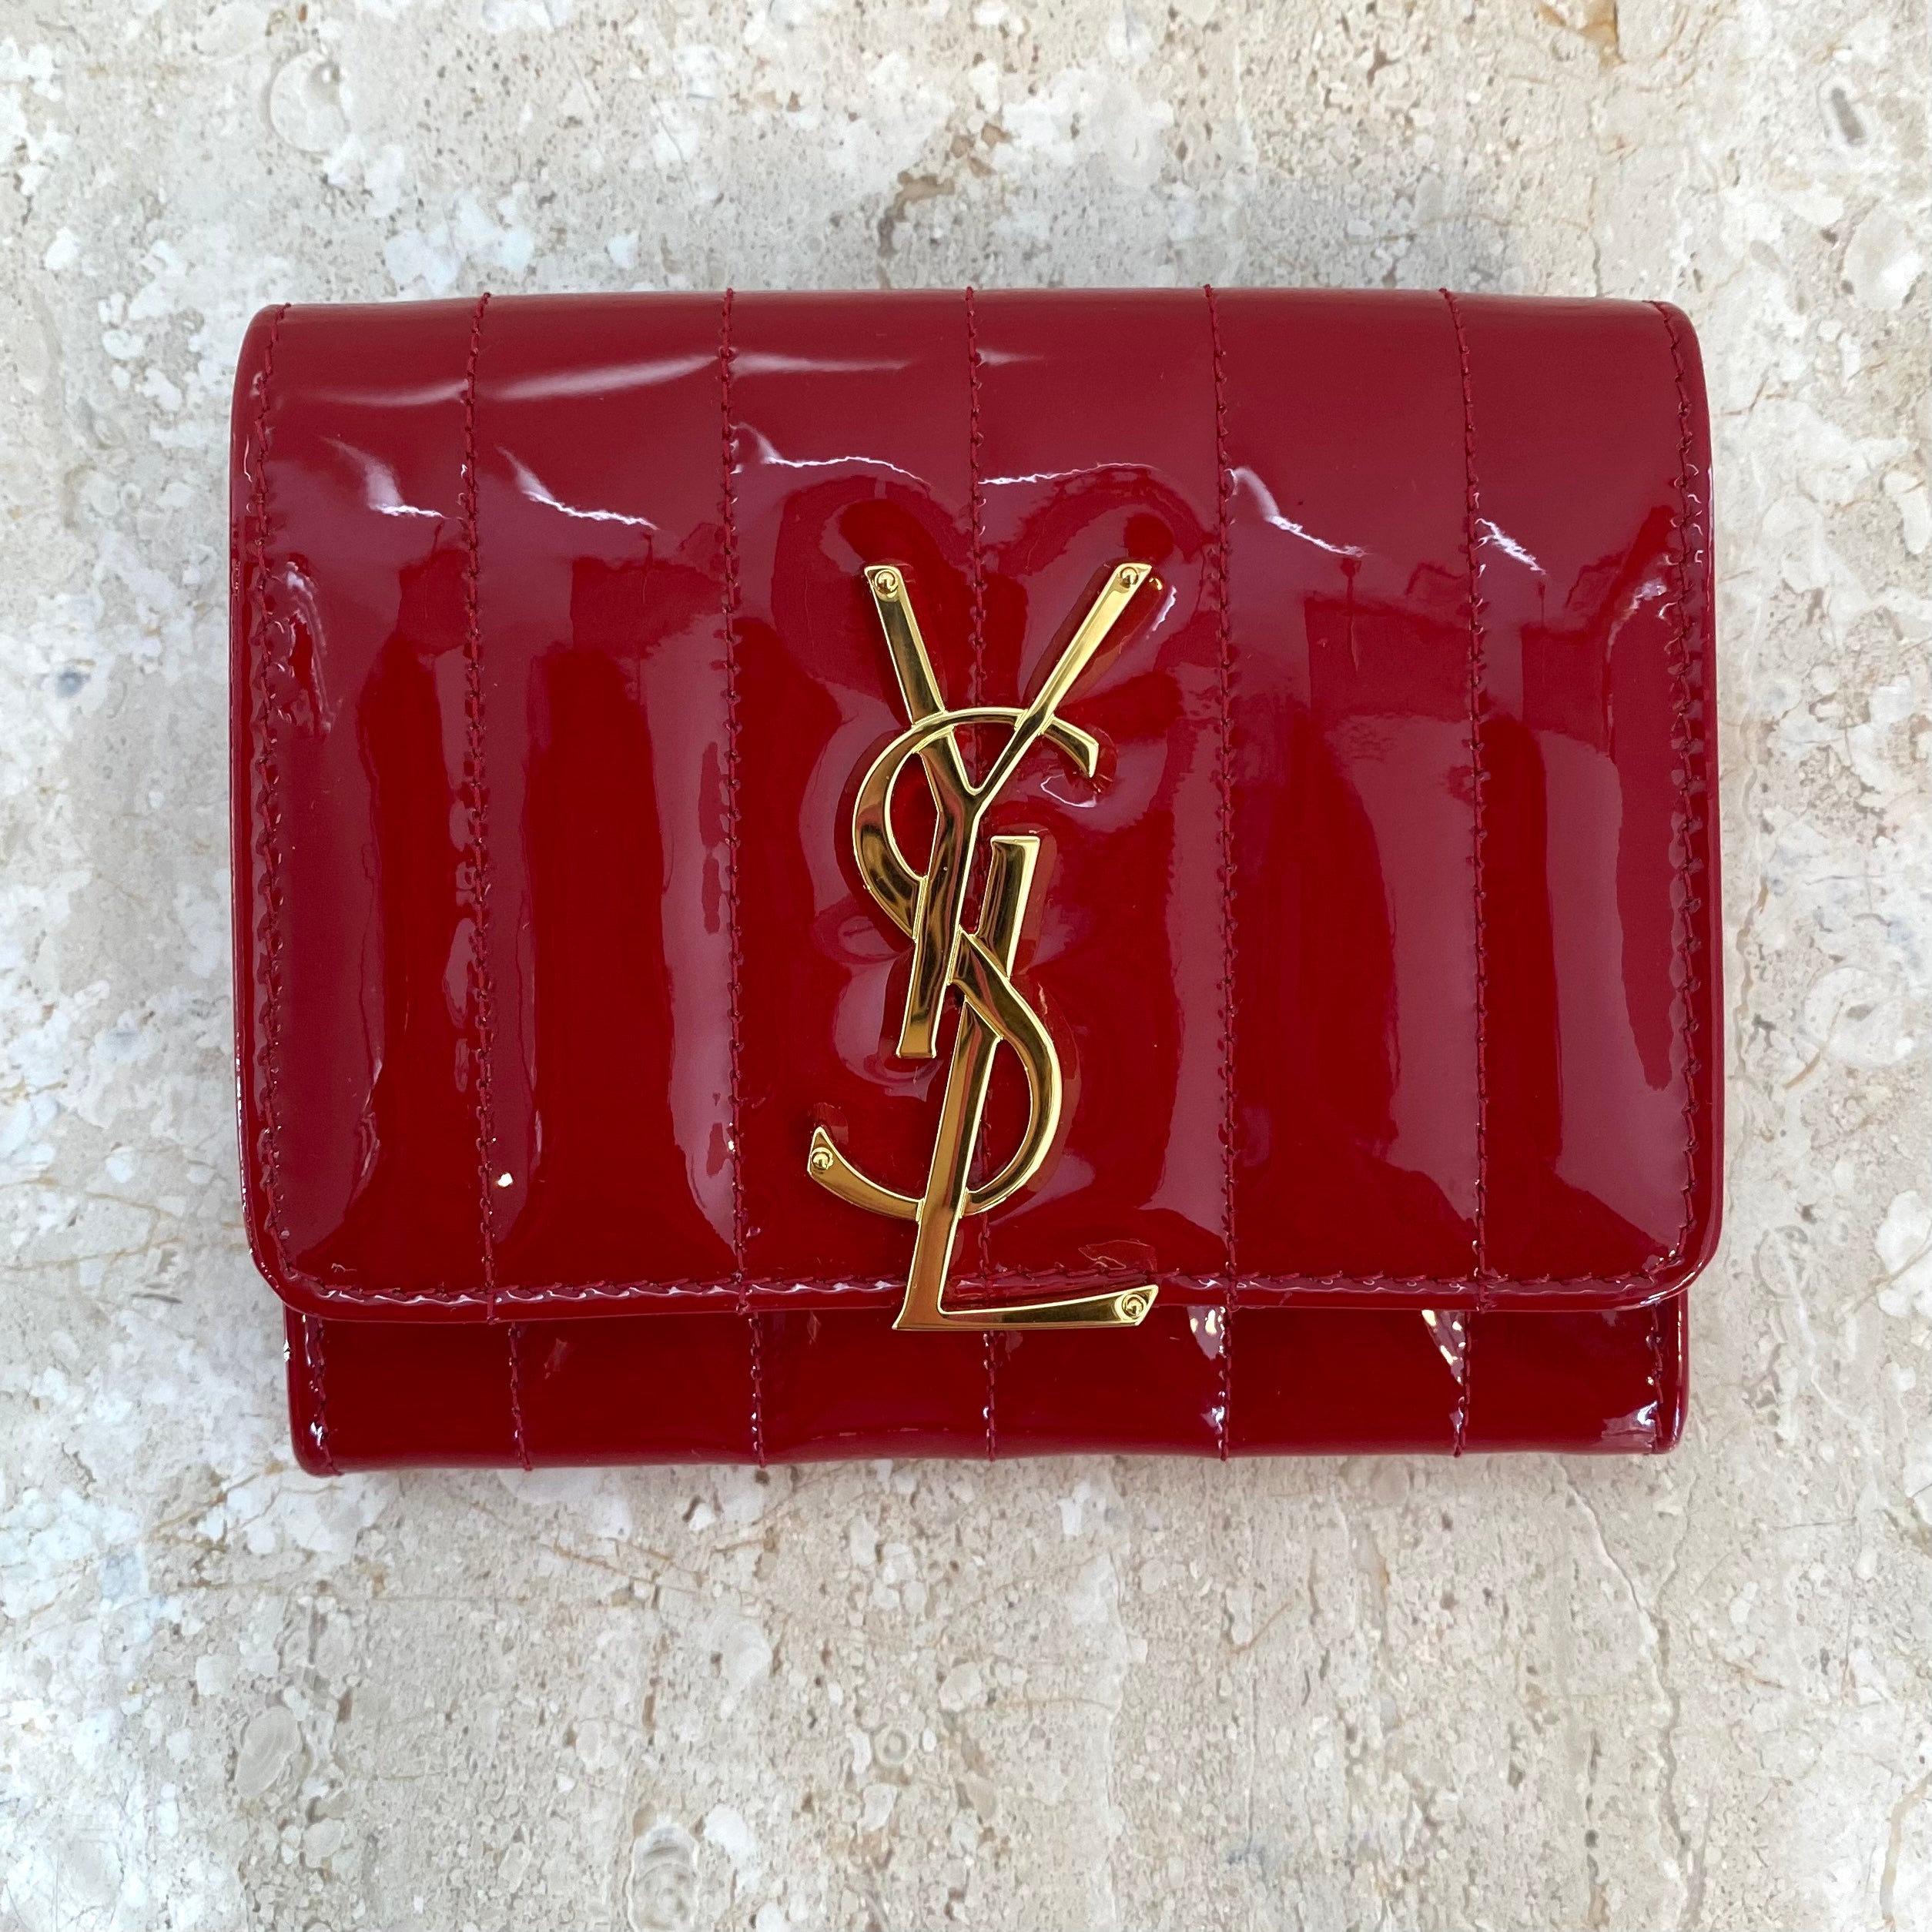 Authentic YSL Red Patent Leather Vicki Wallet